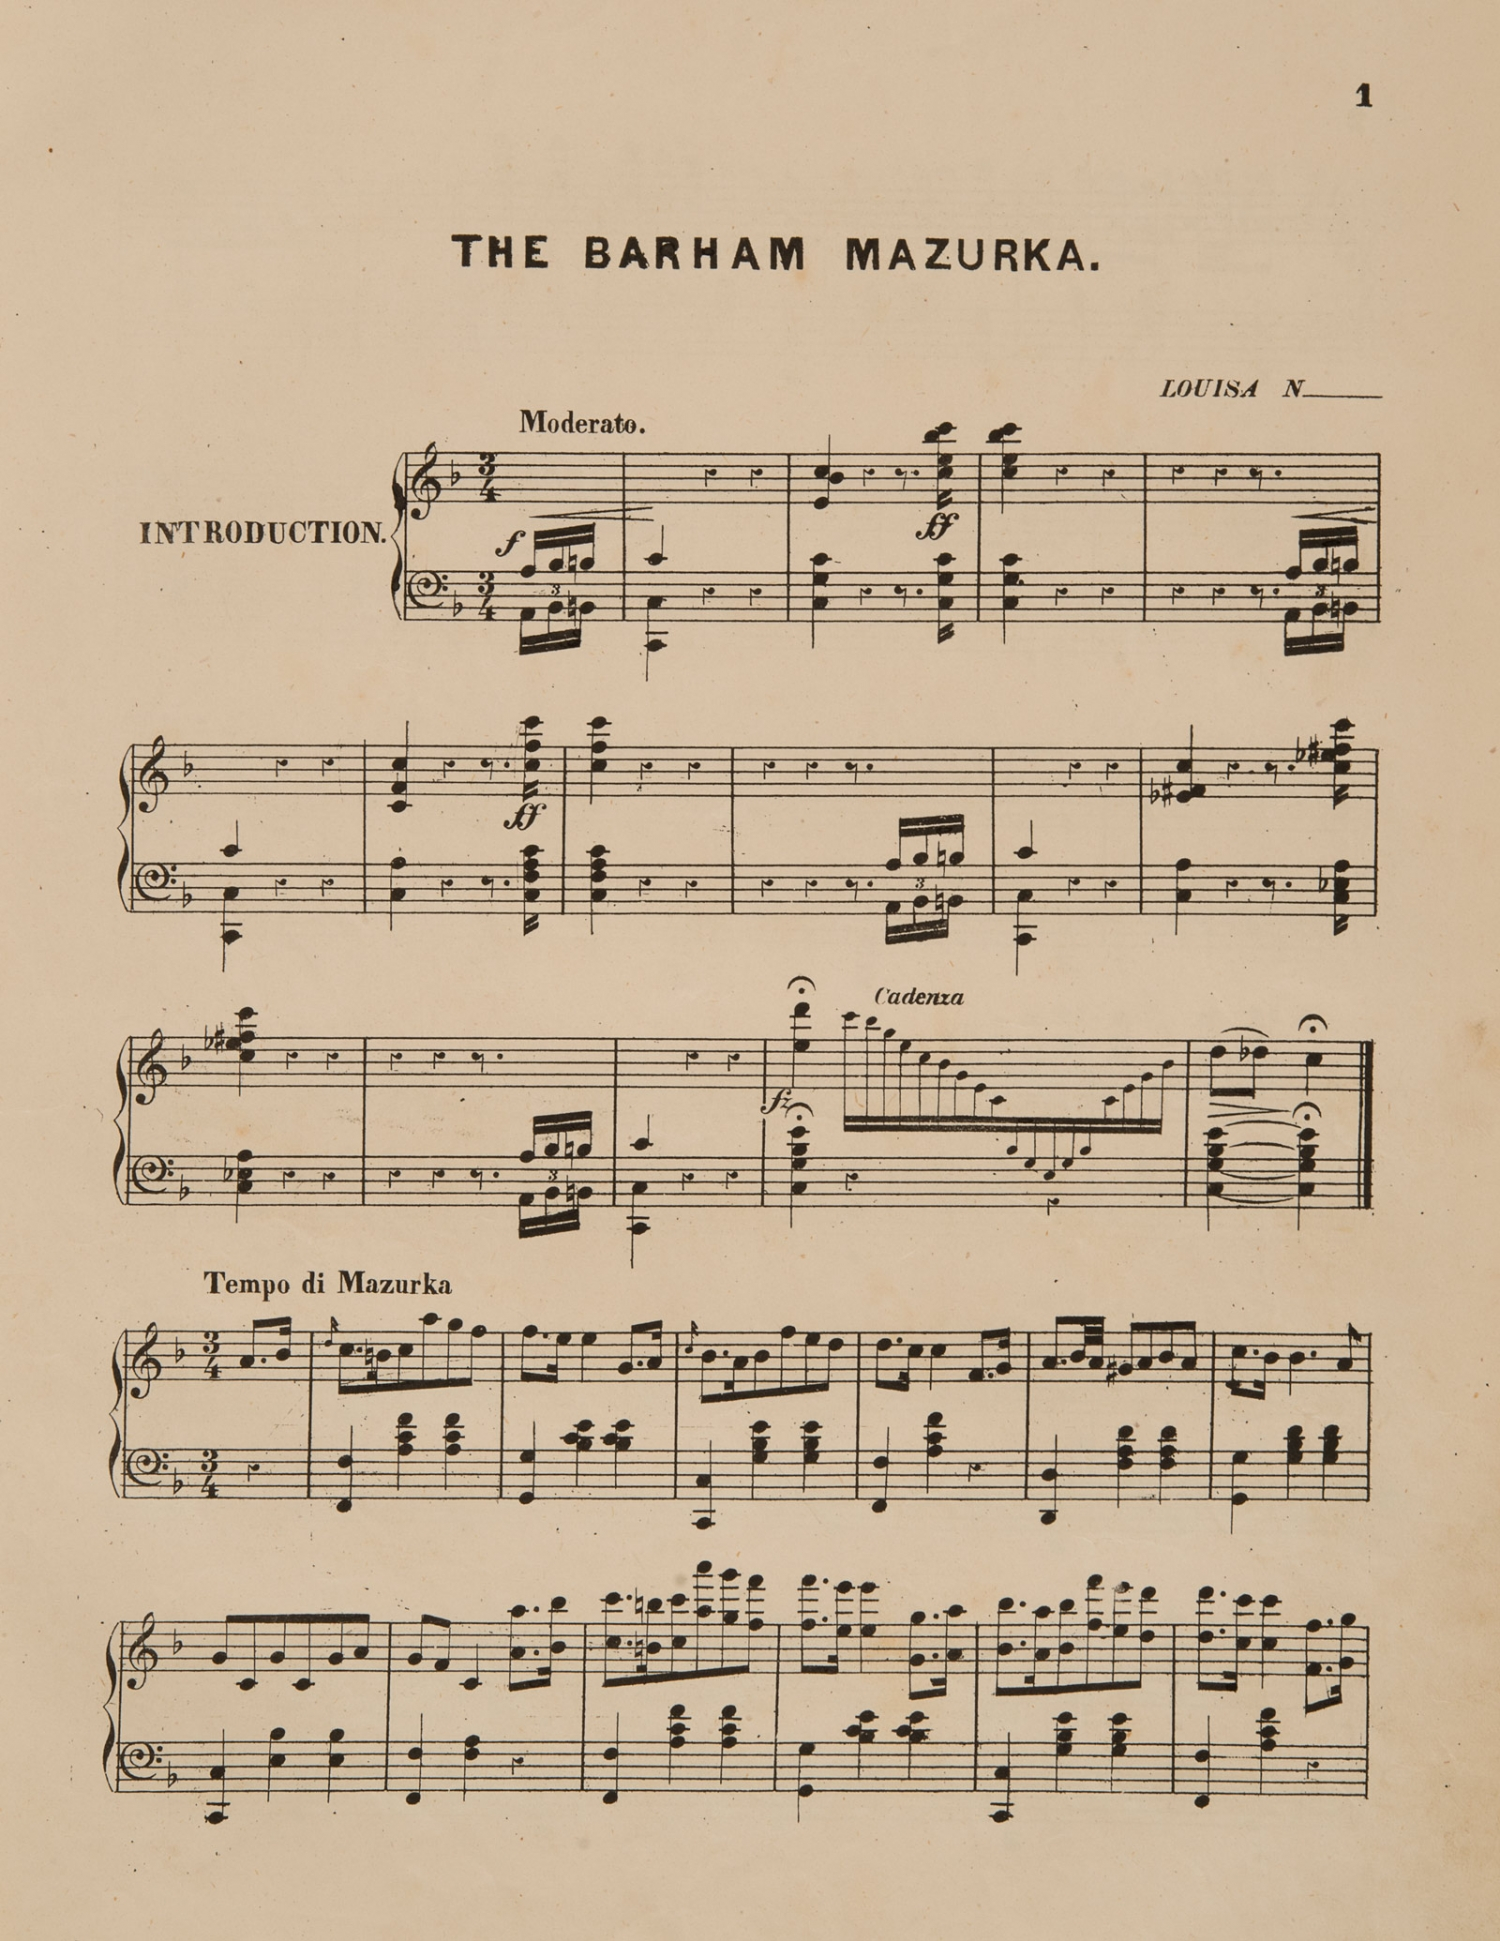 Sheet music, 'The Barham Mazurka', composed by Louise N, page 1, published 1876